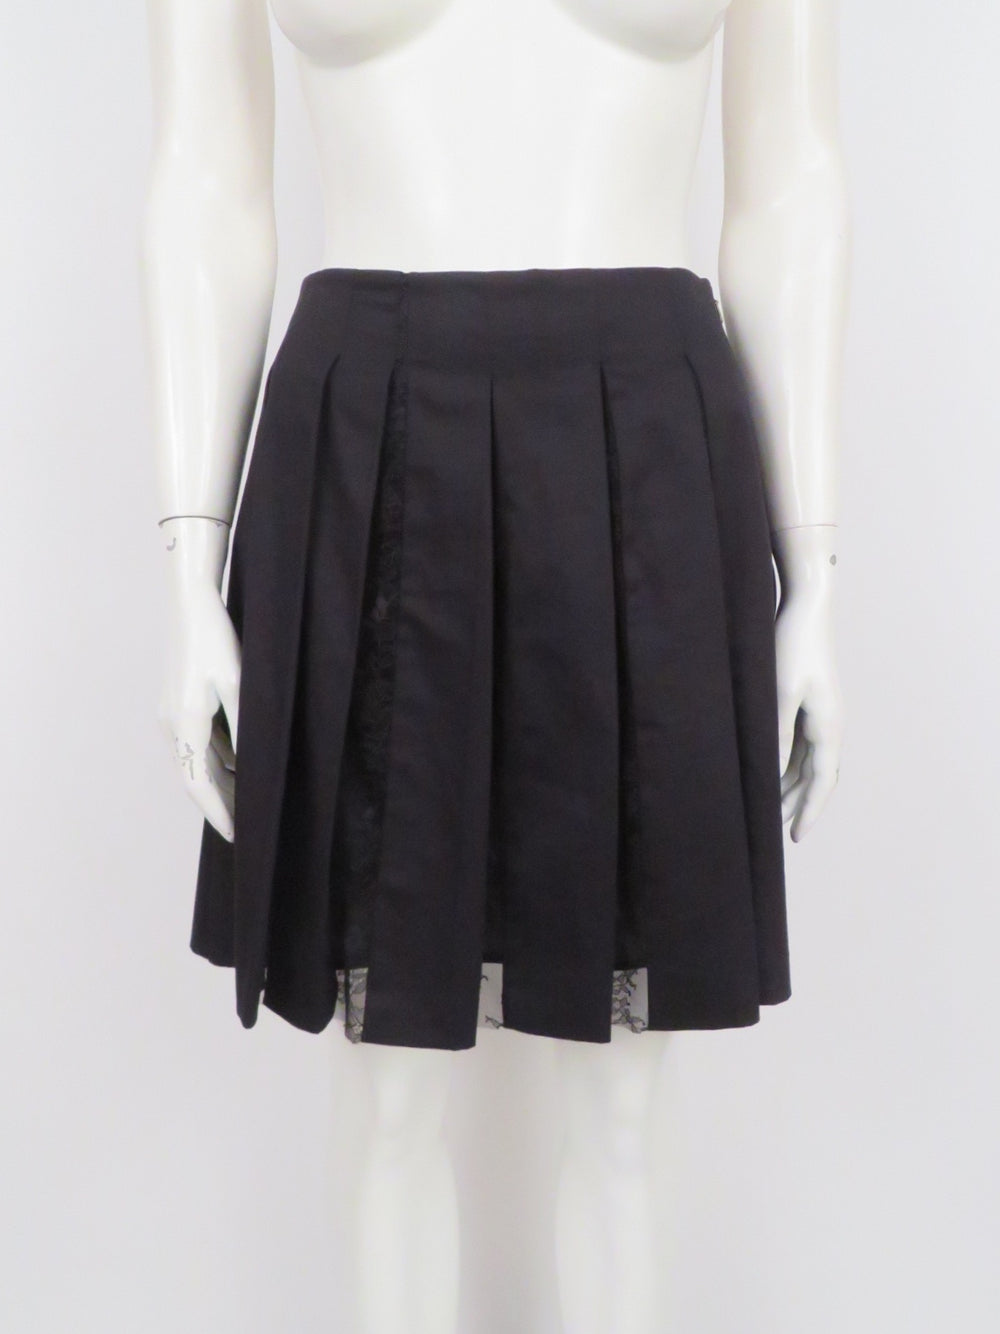 thakoon black pleated mini skirt. features box pleat design with lace inserts. lined.